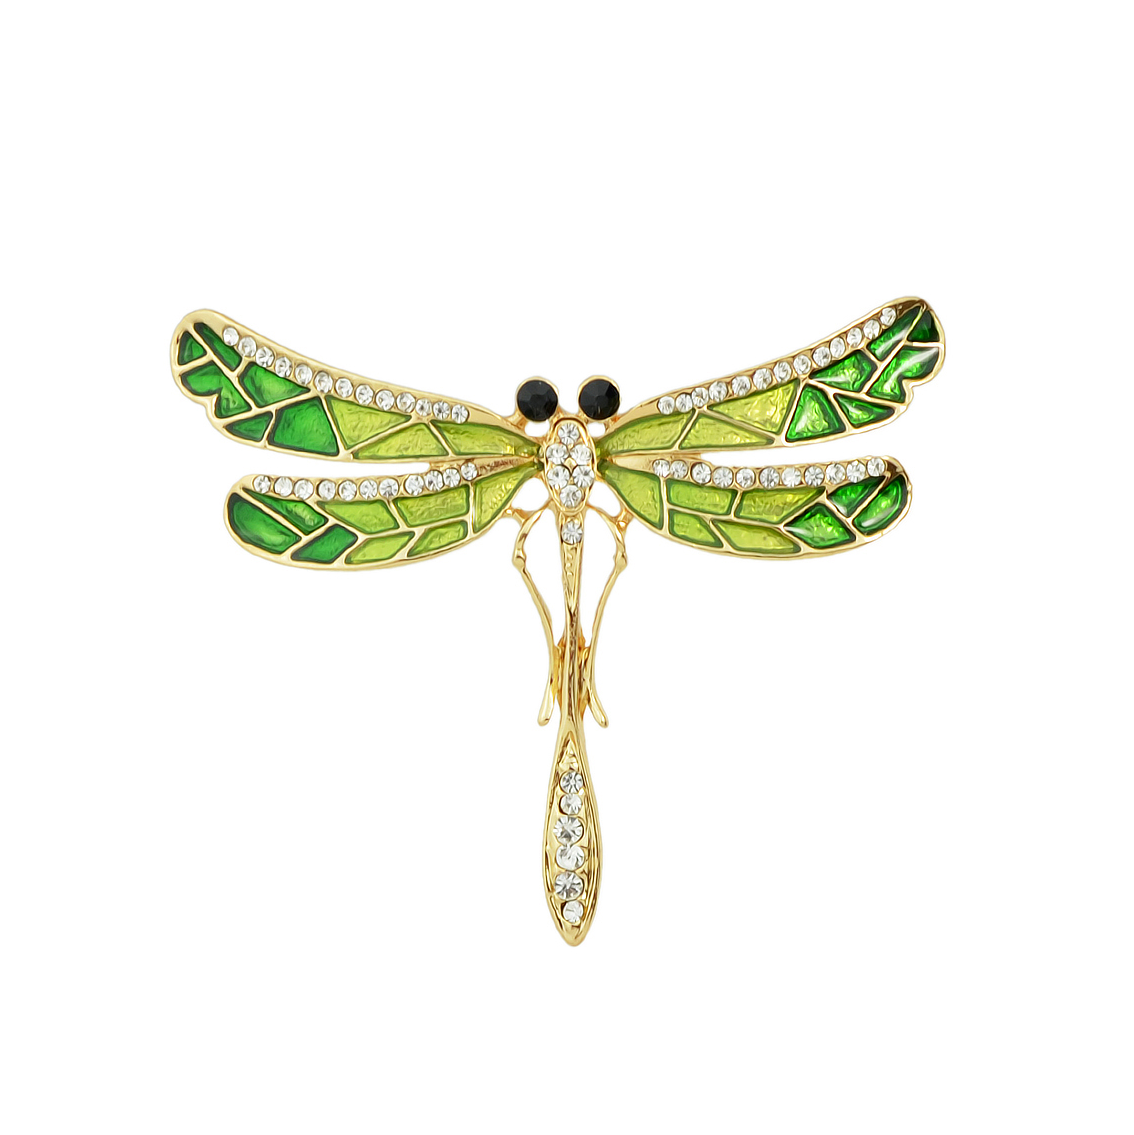 Dragonfly Studded Brooch